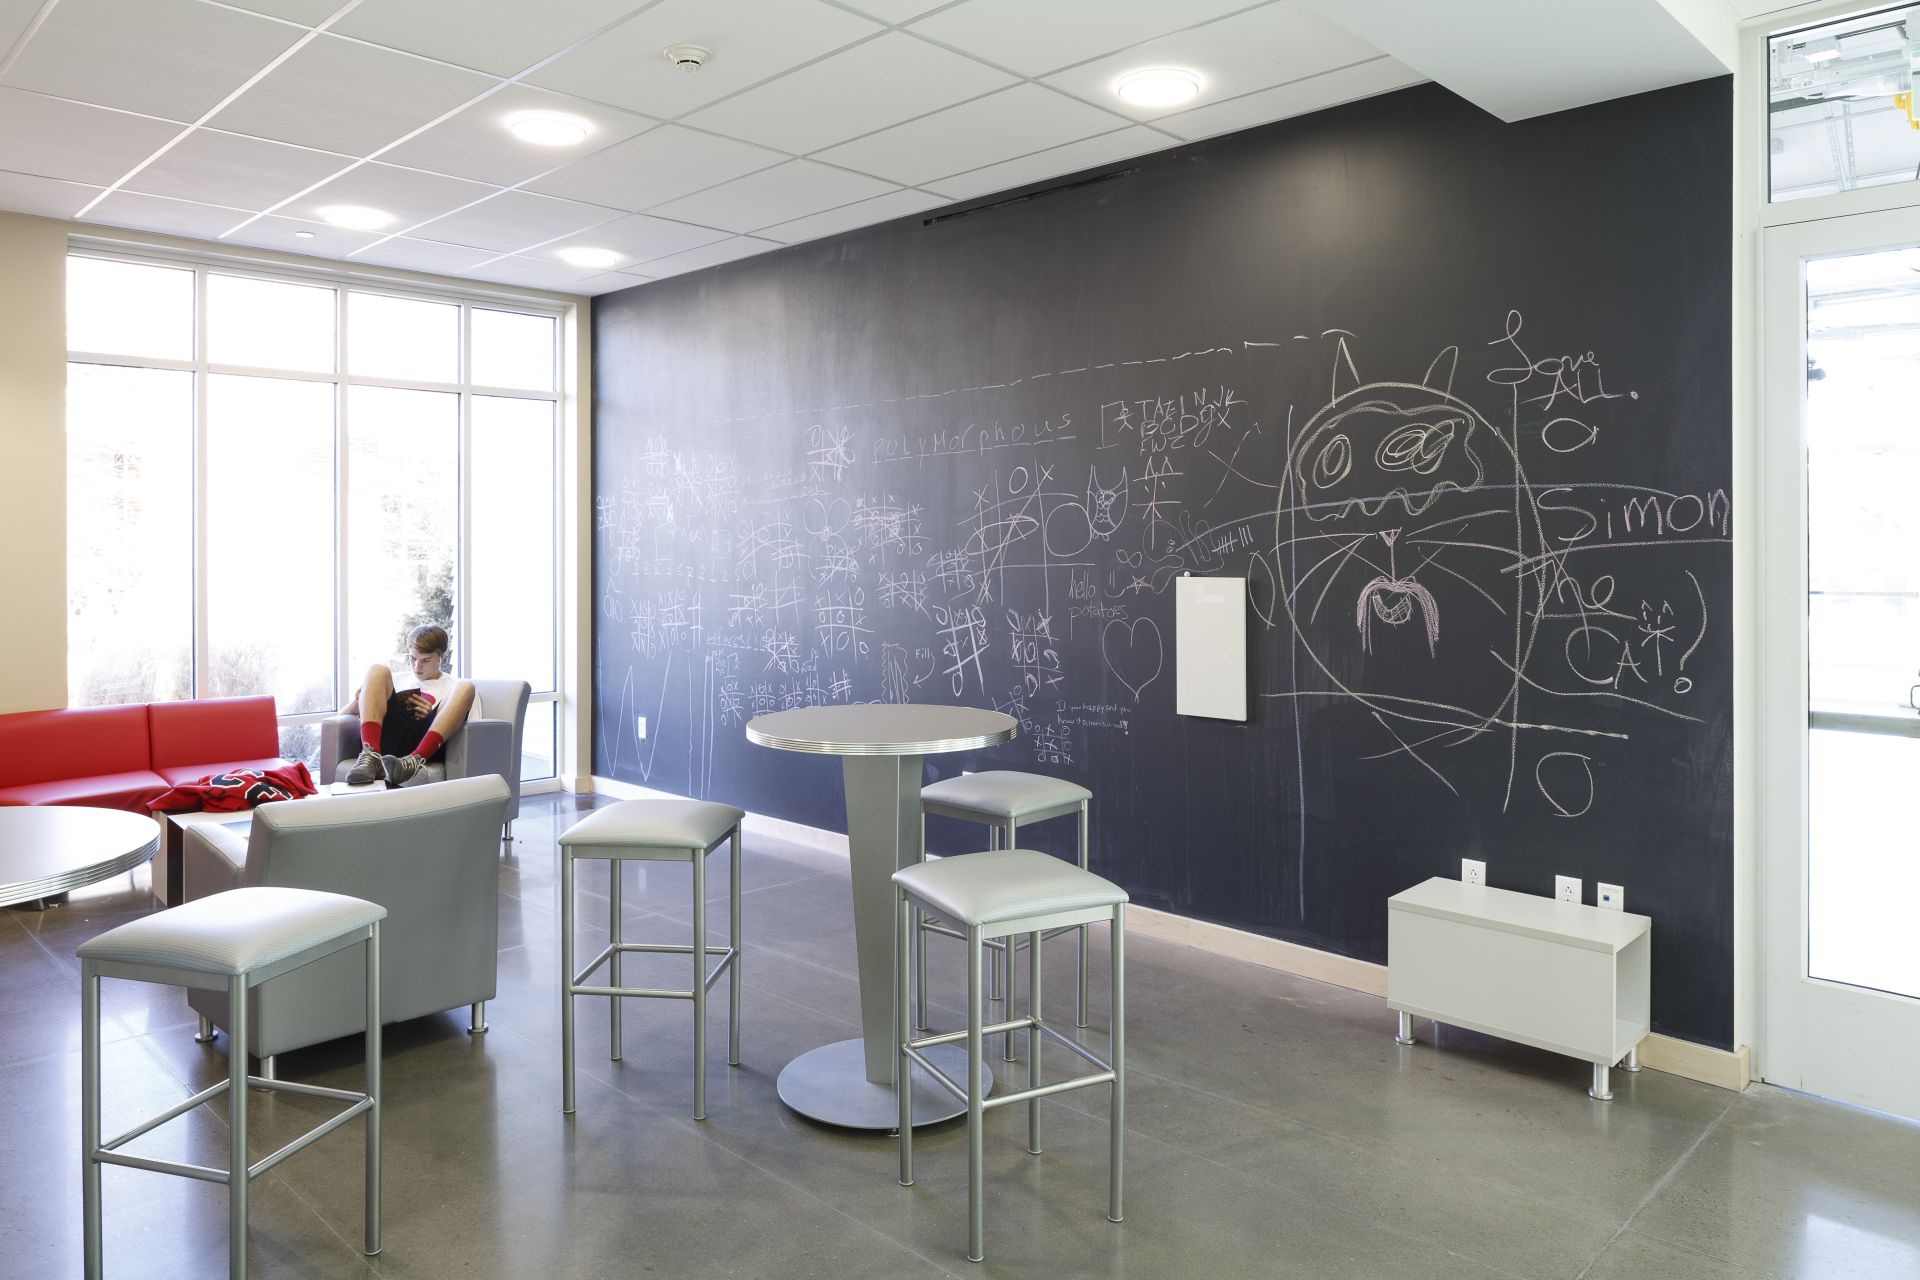 A chalkboard wall in one of the many collaborative spaces in the new building invites students to express themselves.